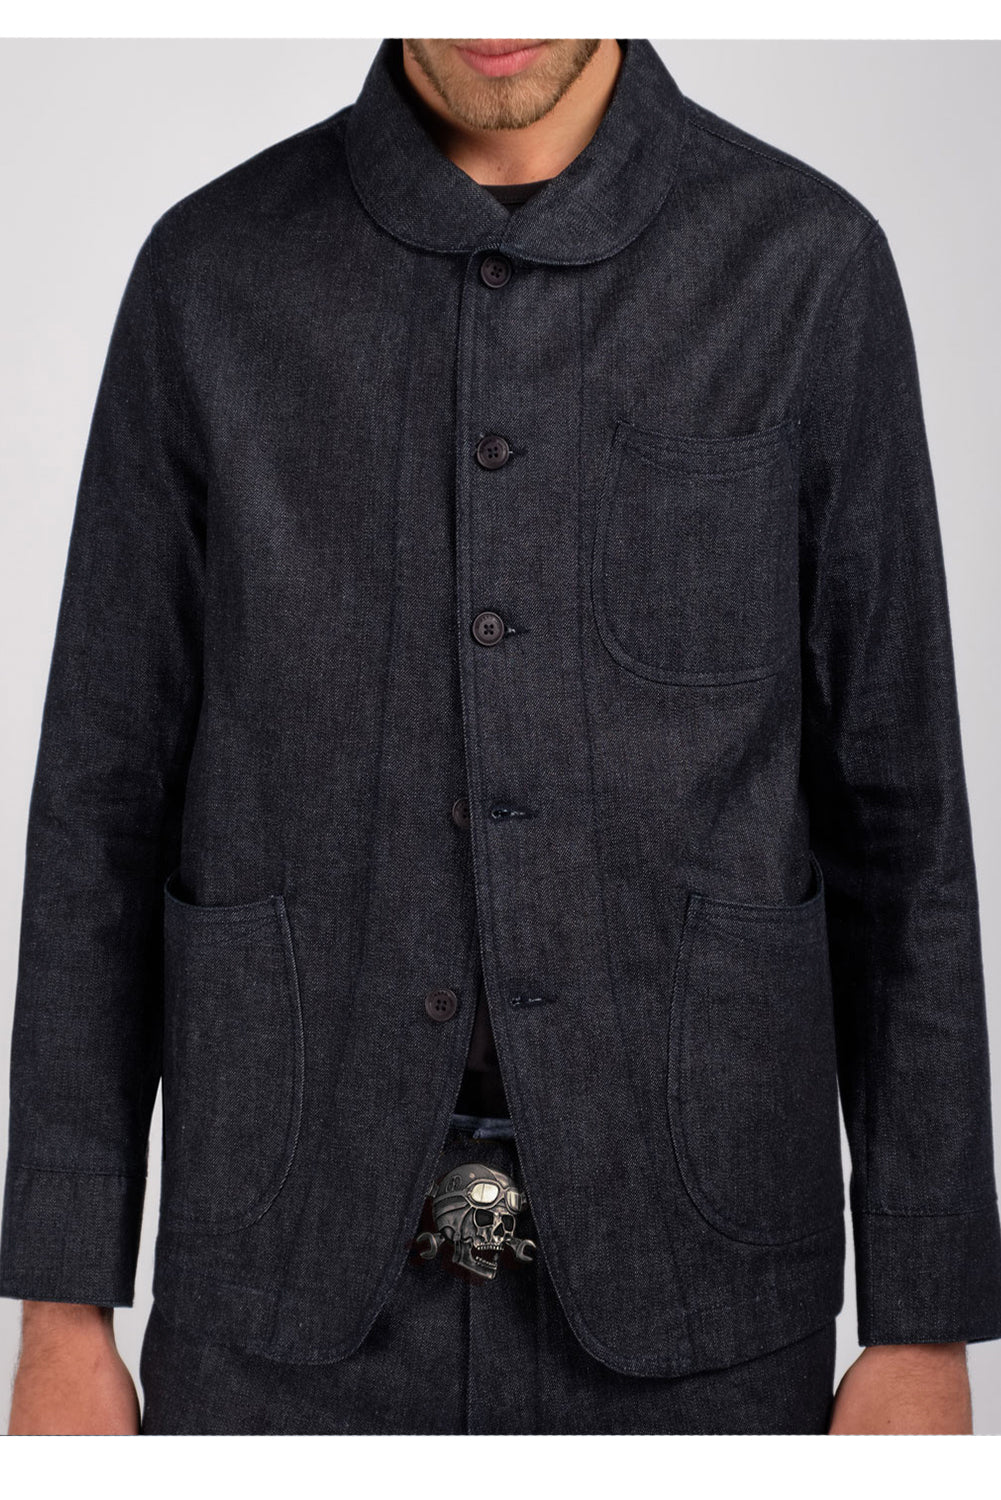 Rockers Delight JAYCE Denim Chore Work Coat Dark Denim